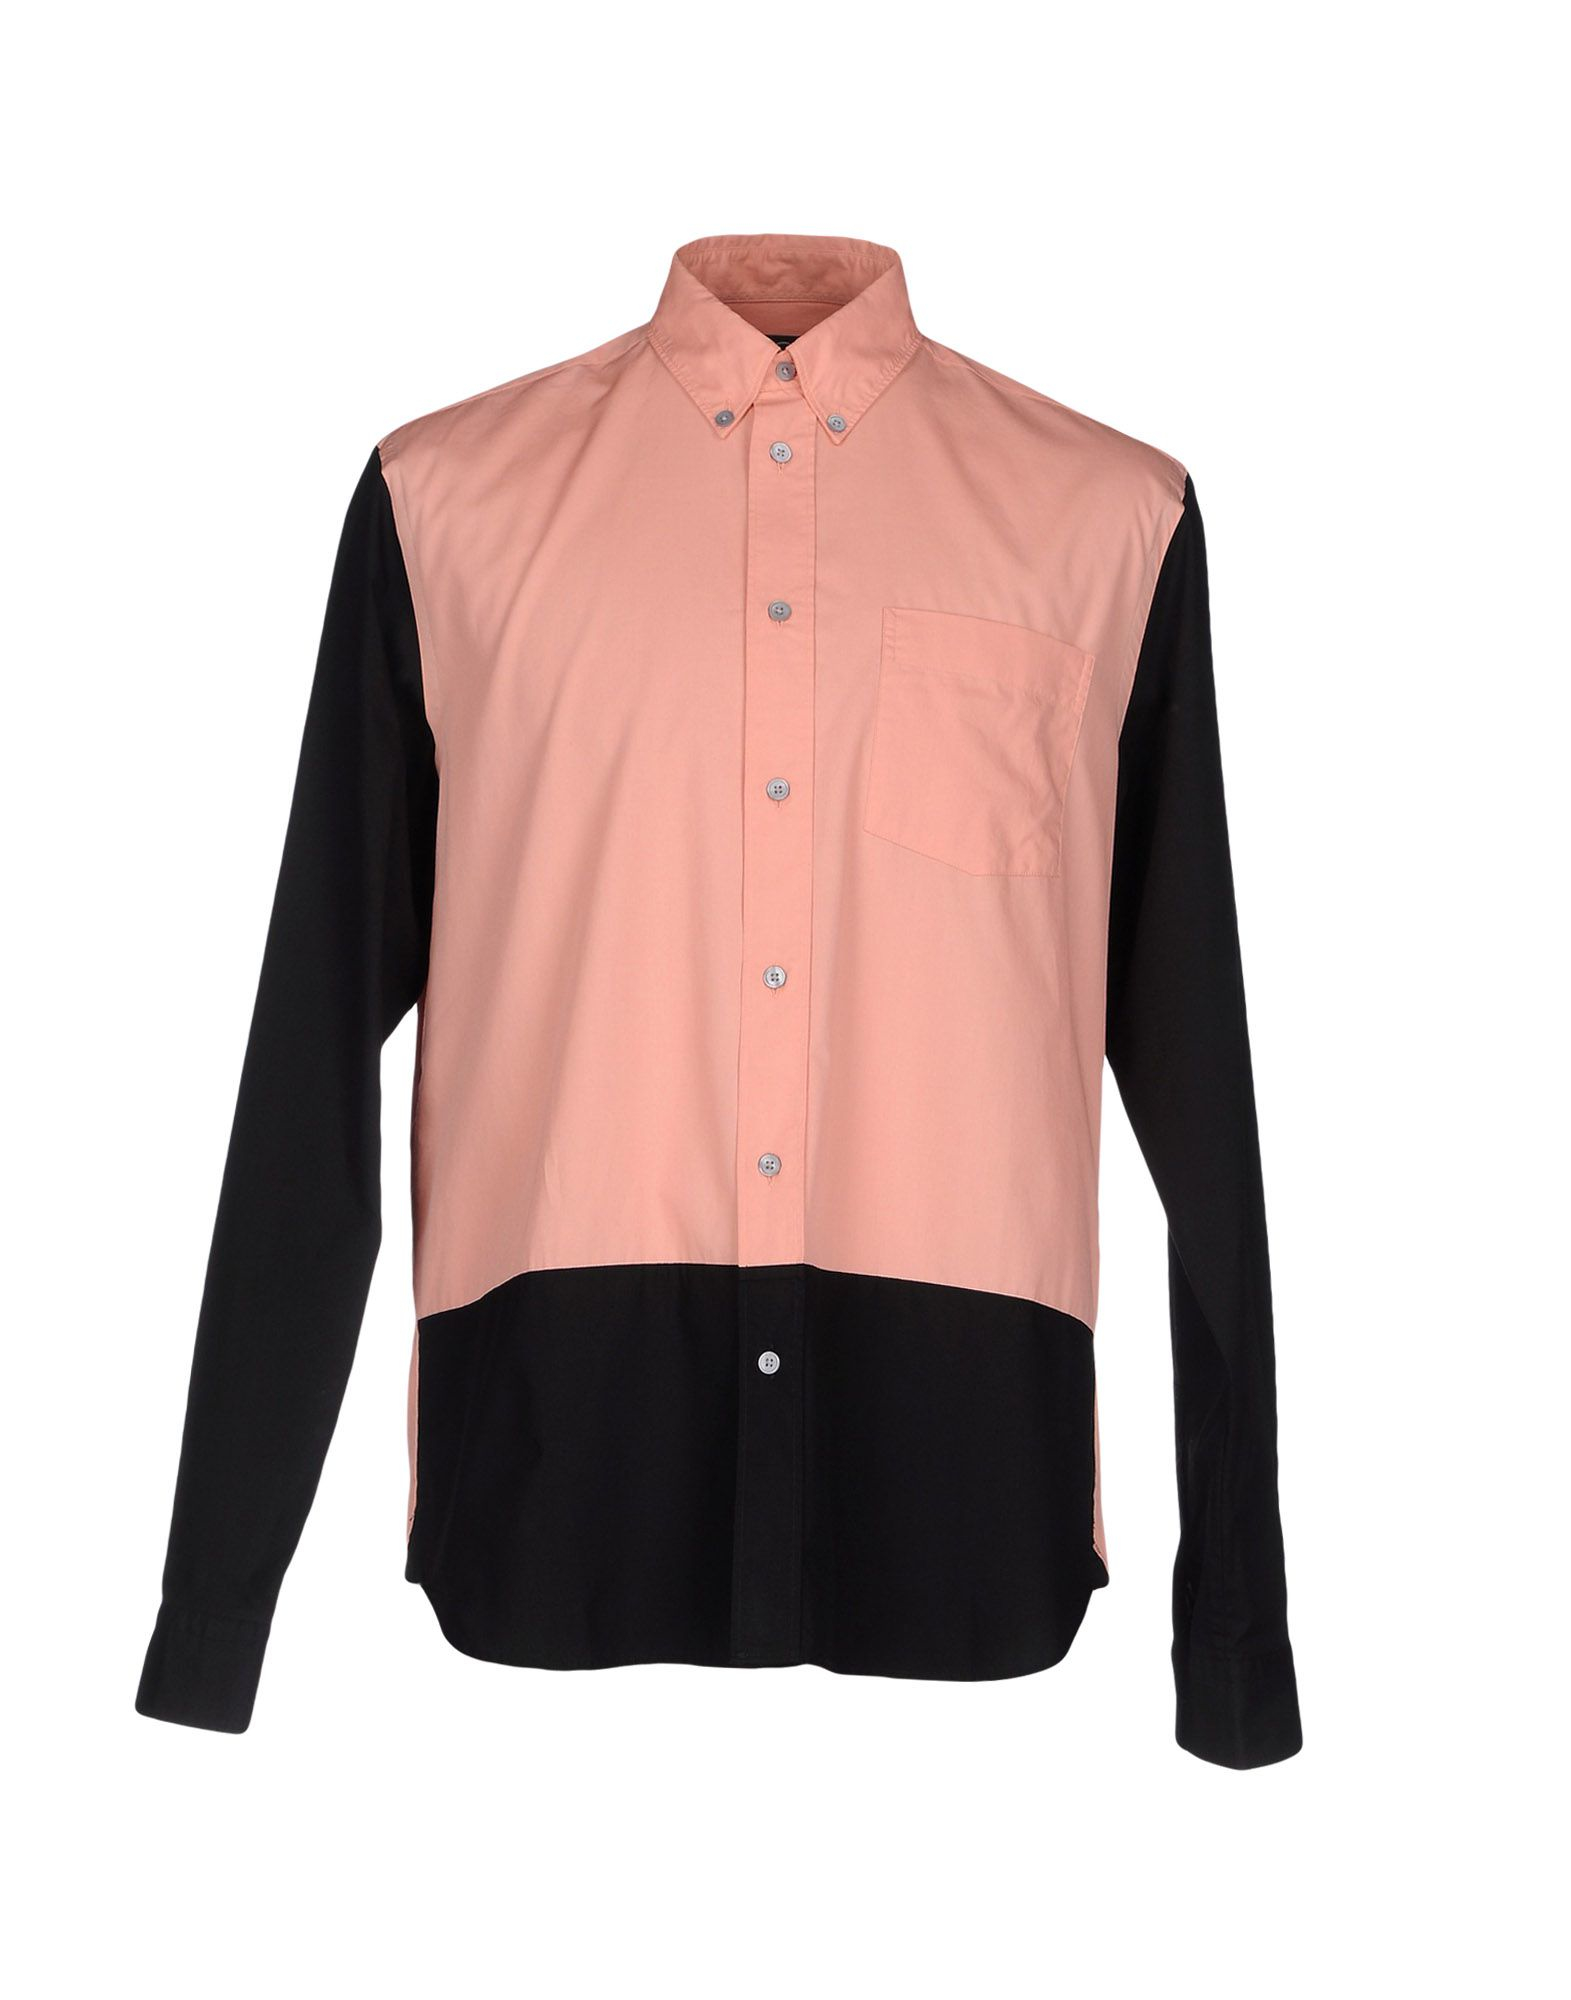 Mcq alexander mcqueen shirt in multicolor for men pastel for Pastel colored men s t shirts